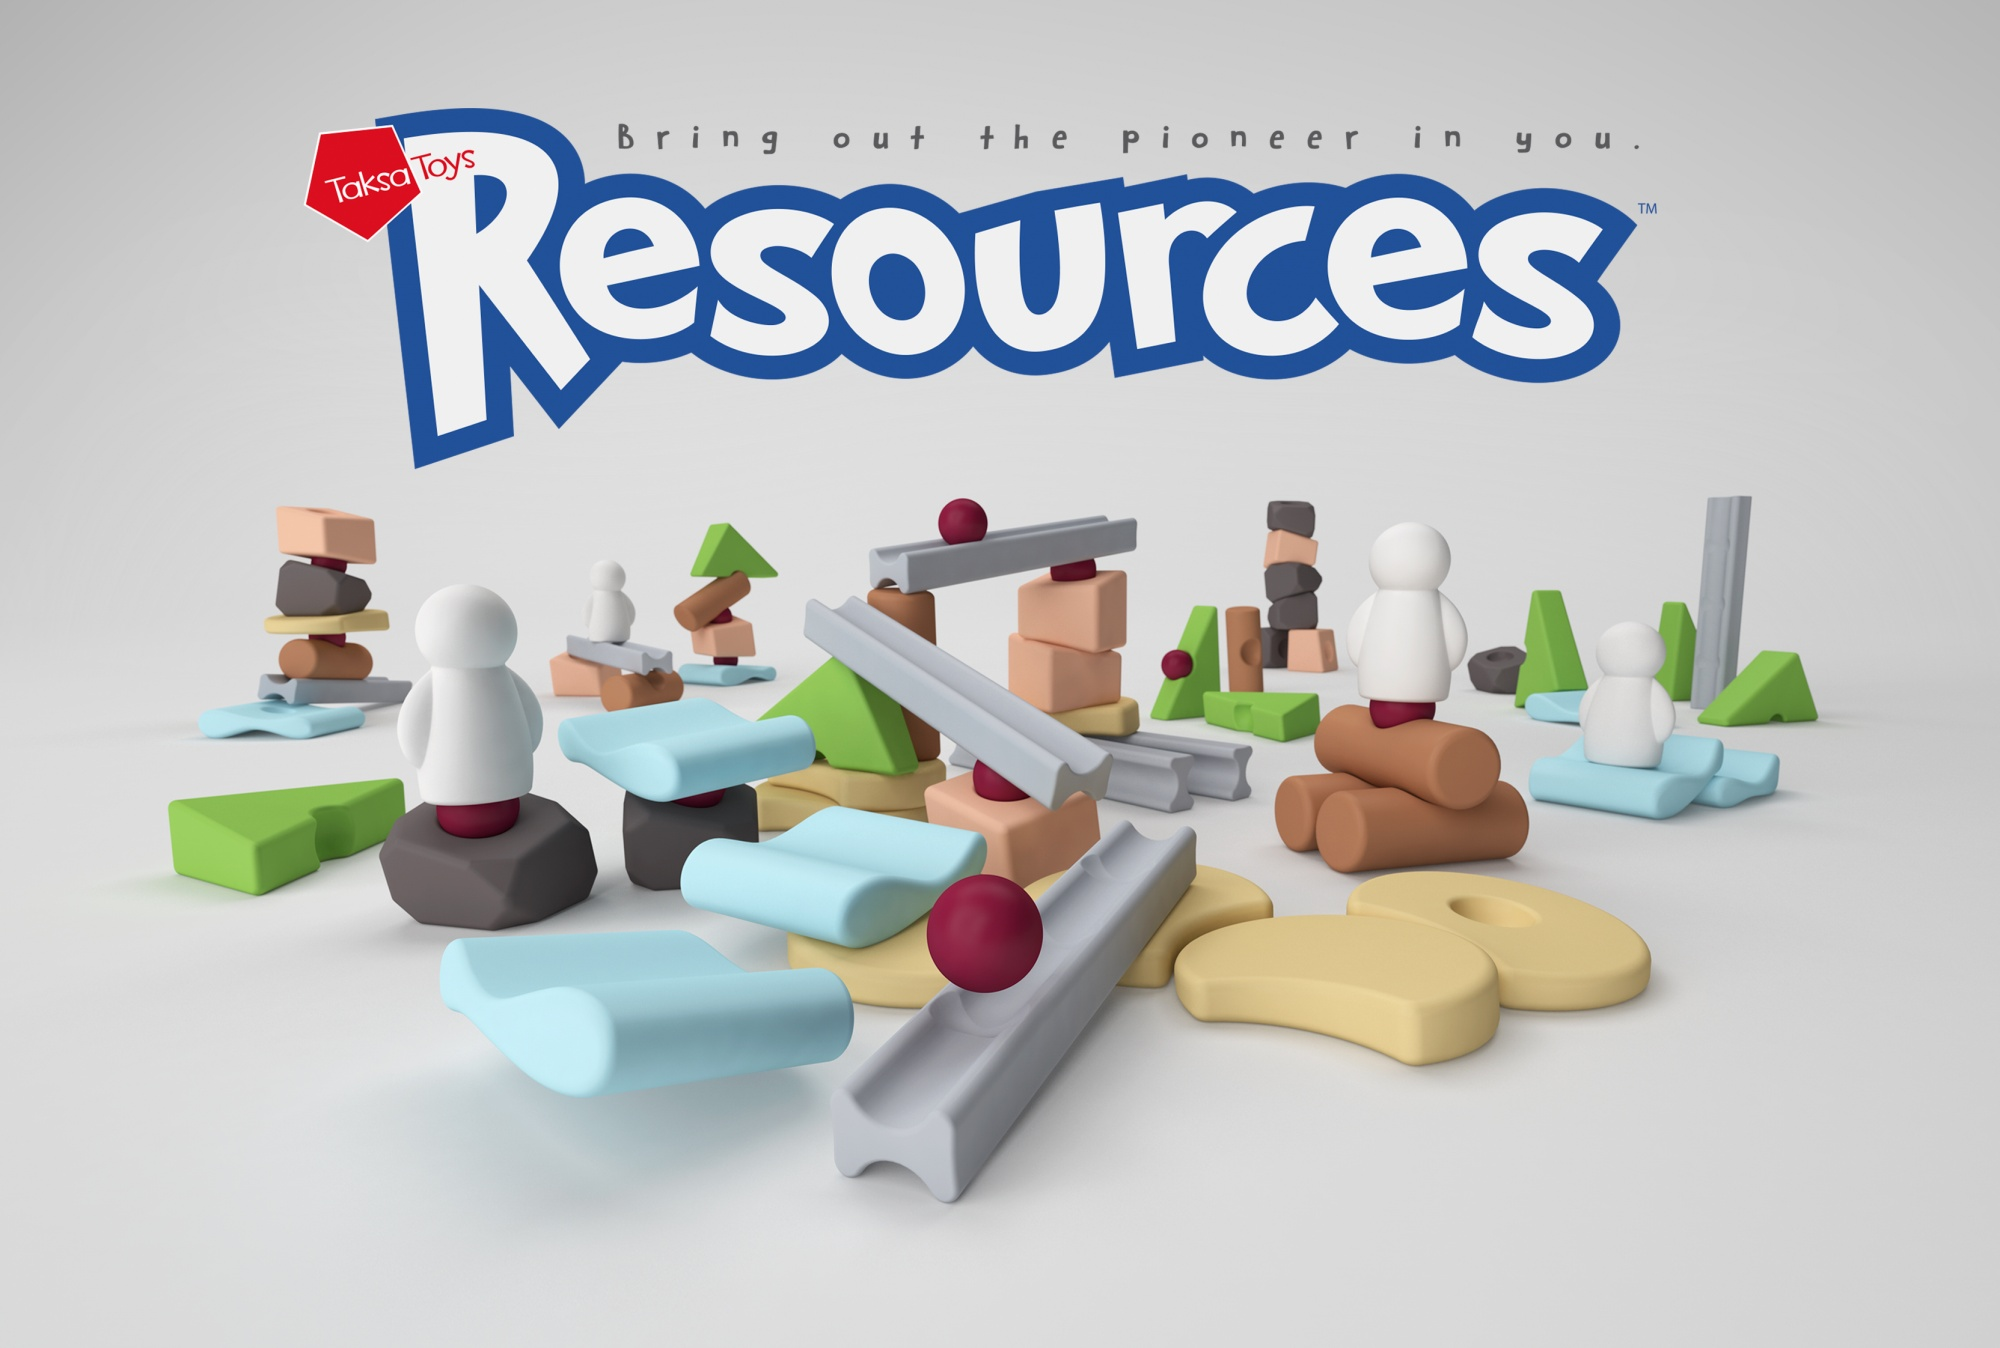 Resources by TaksaToys